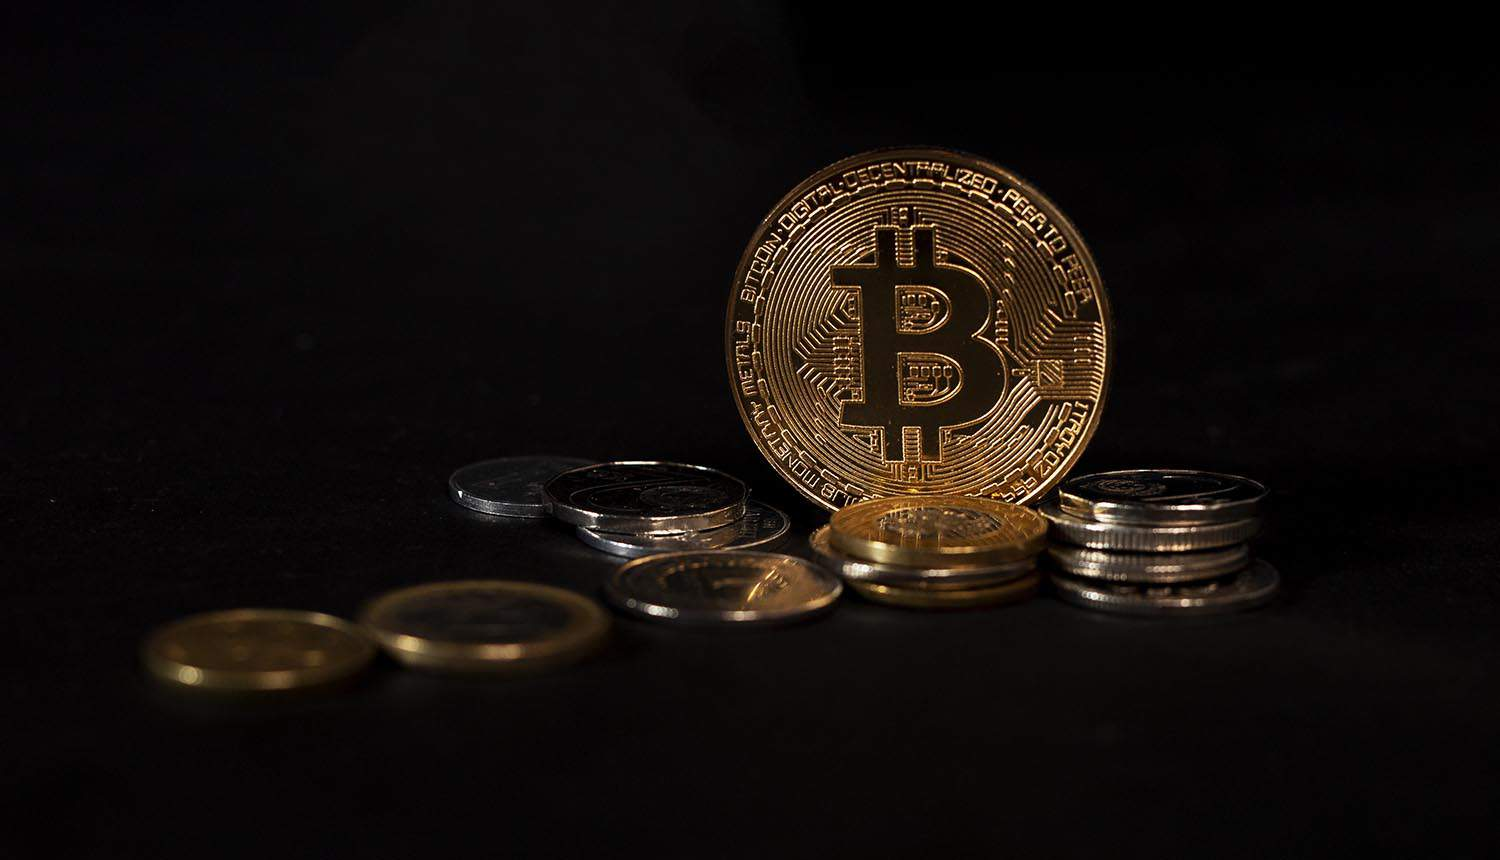 Bitcoin coin standing on other cryptocurrency showing recovery of ransomware payment